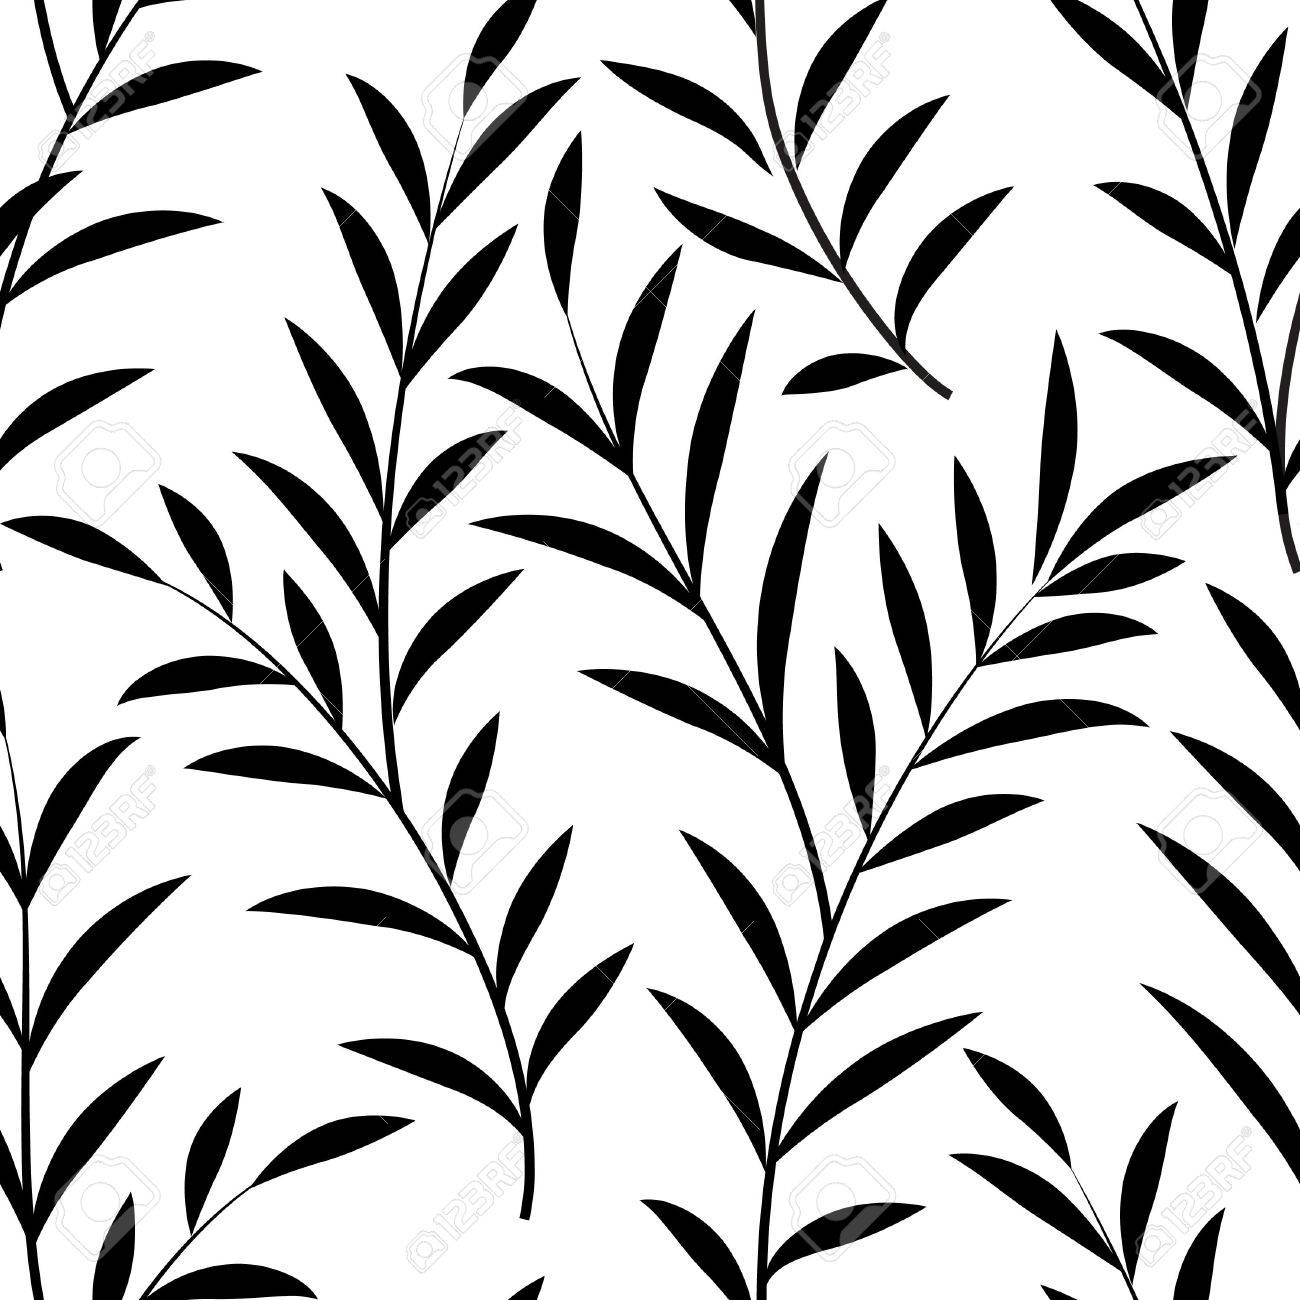 abstract floral pattern floral leaves silhouette black and white rh 123rf com floral pattern vector illustration floral pattern vector free download